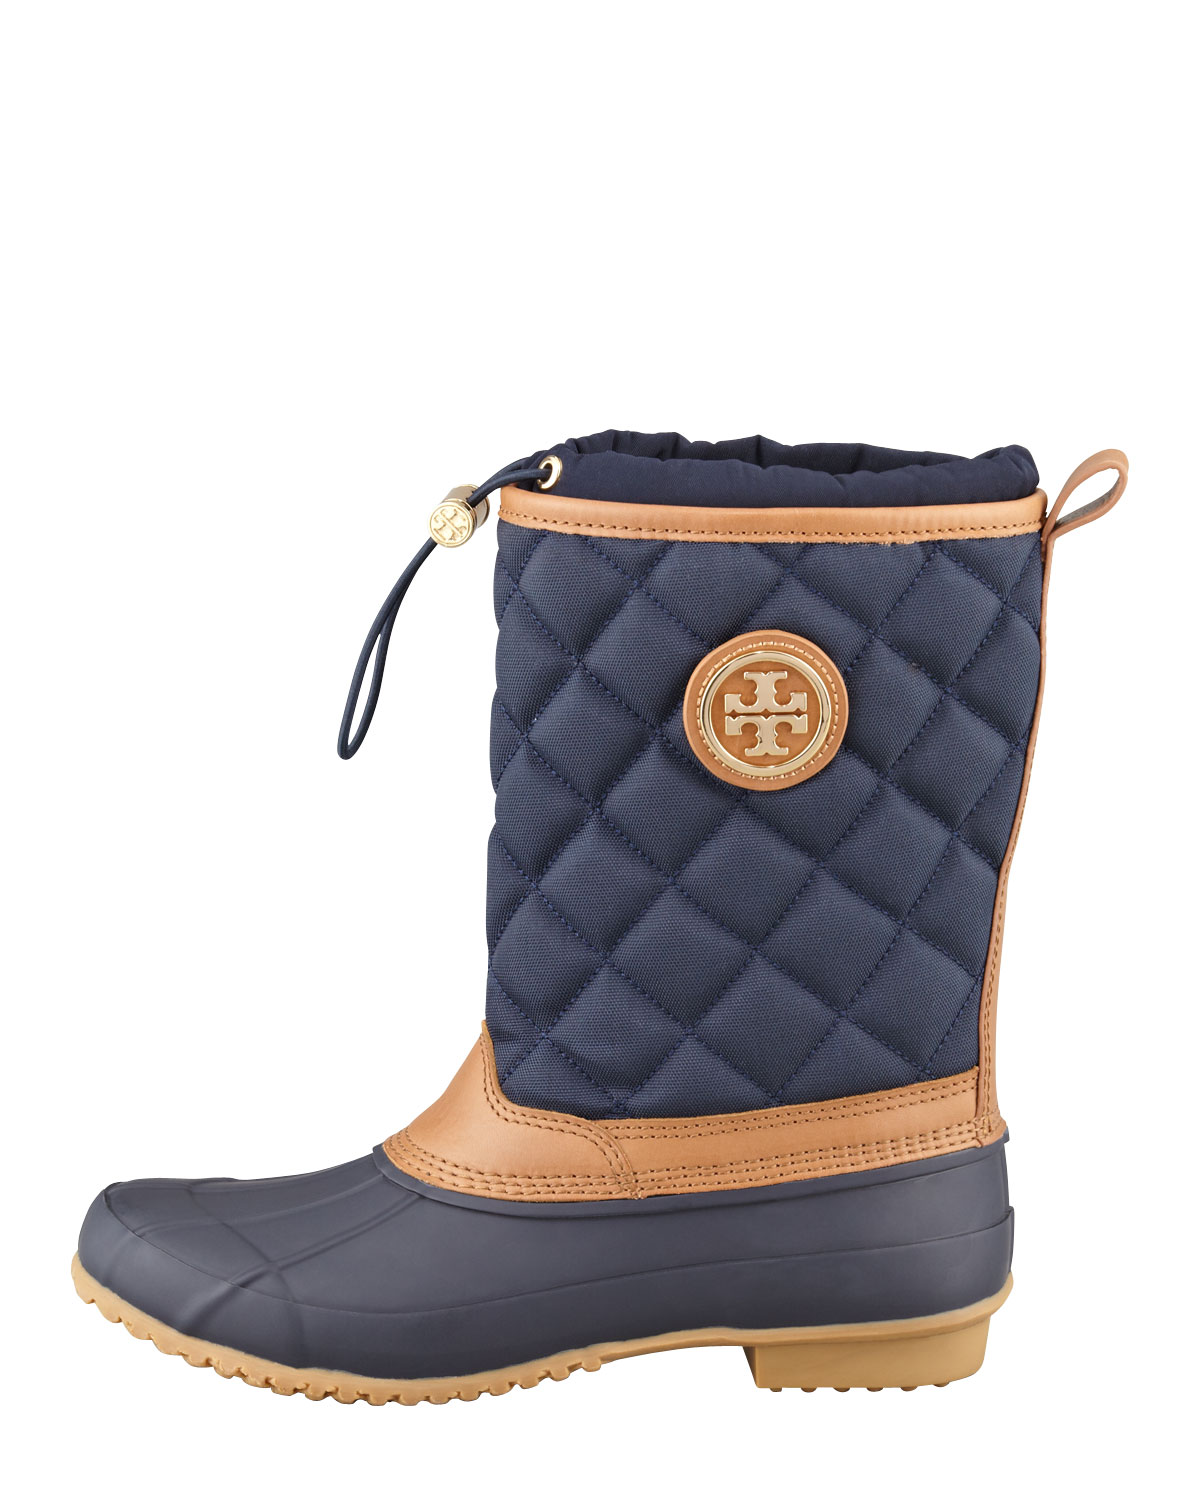 Tory Burch Denal Quilted Rain Boot Bright Navy In Blue Lyst